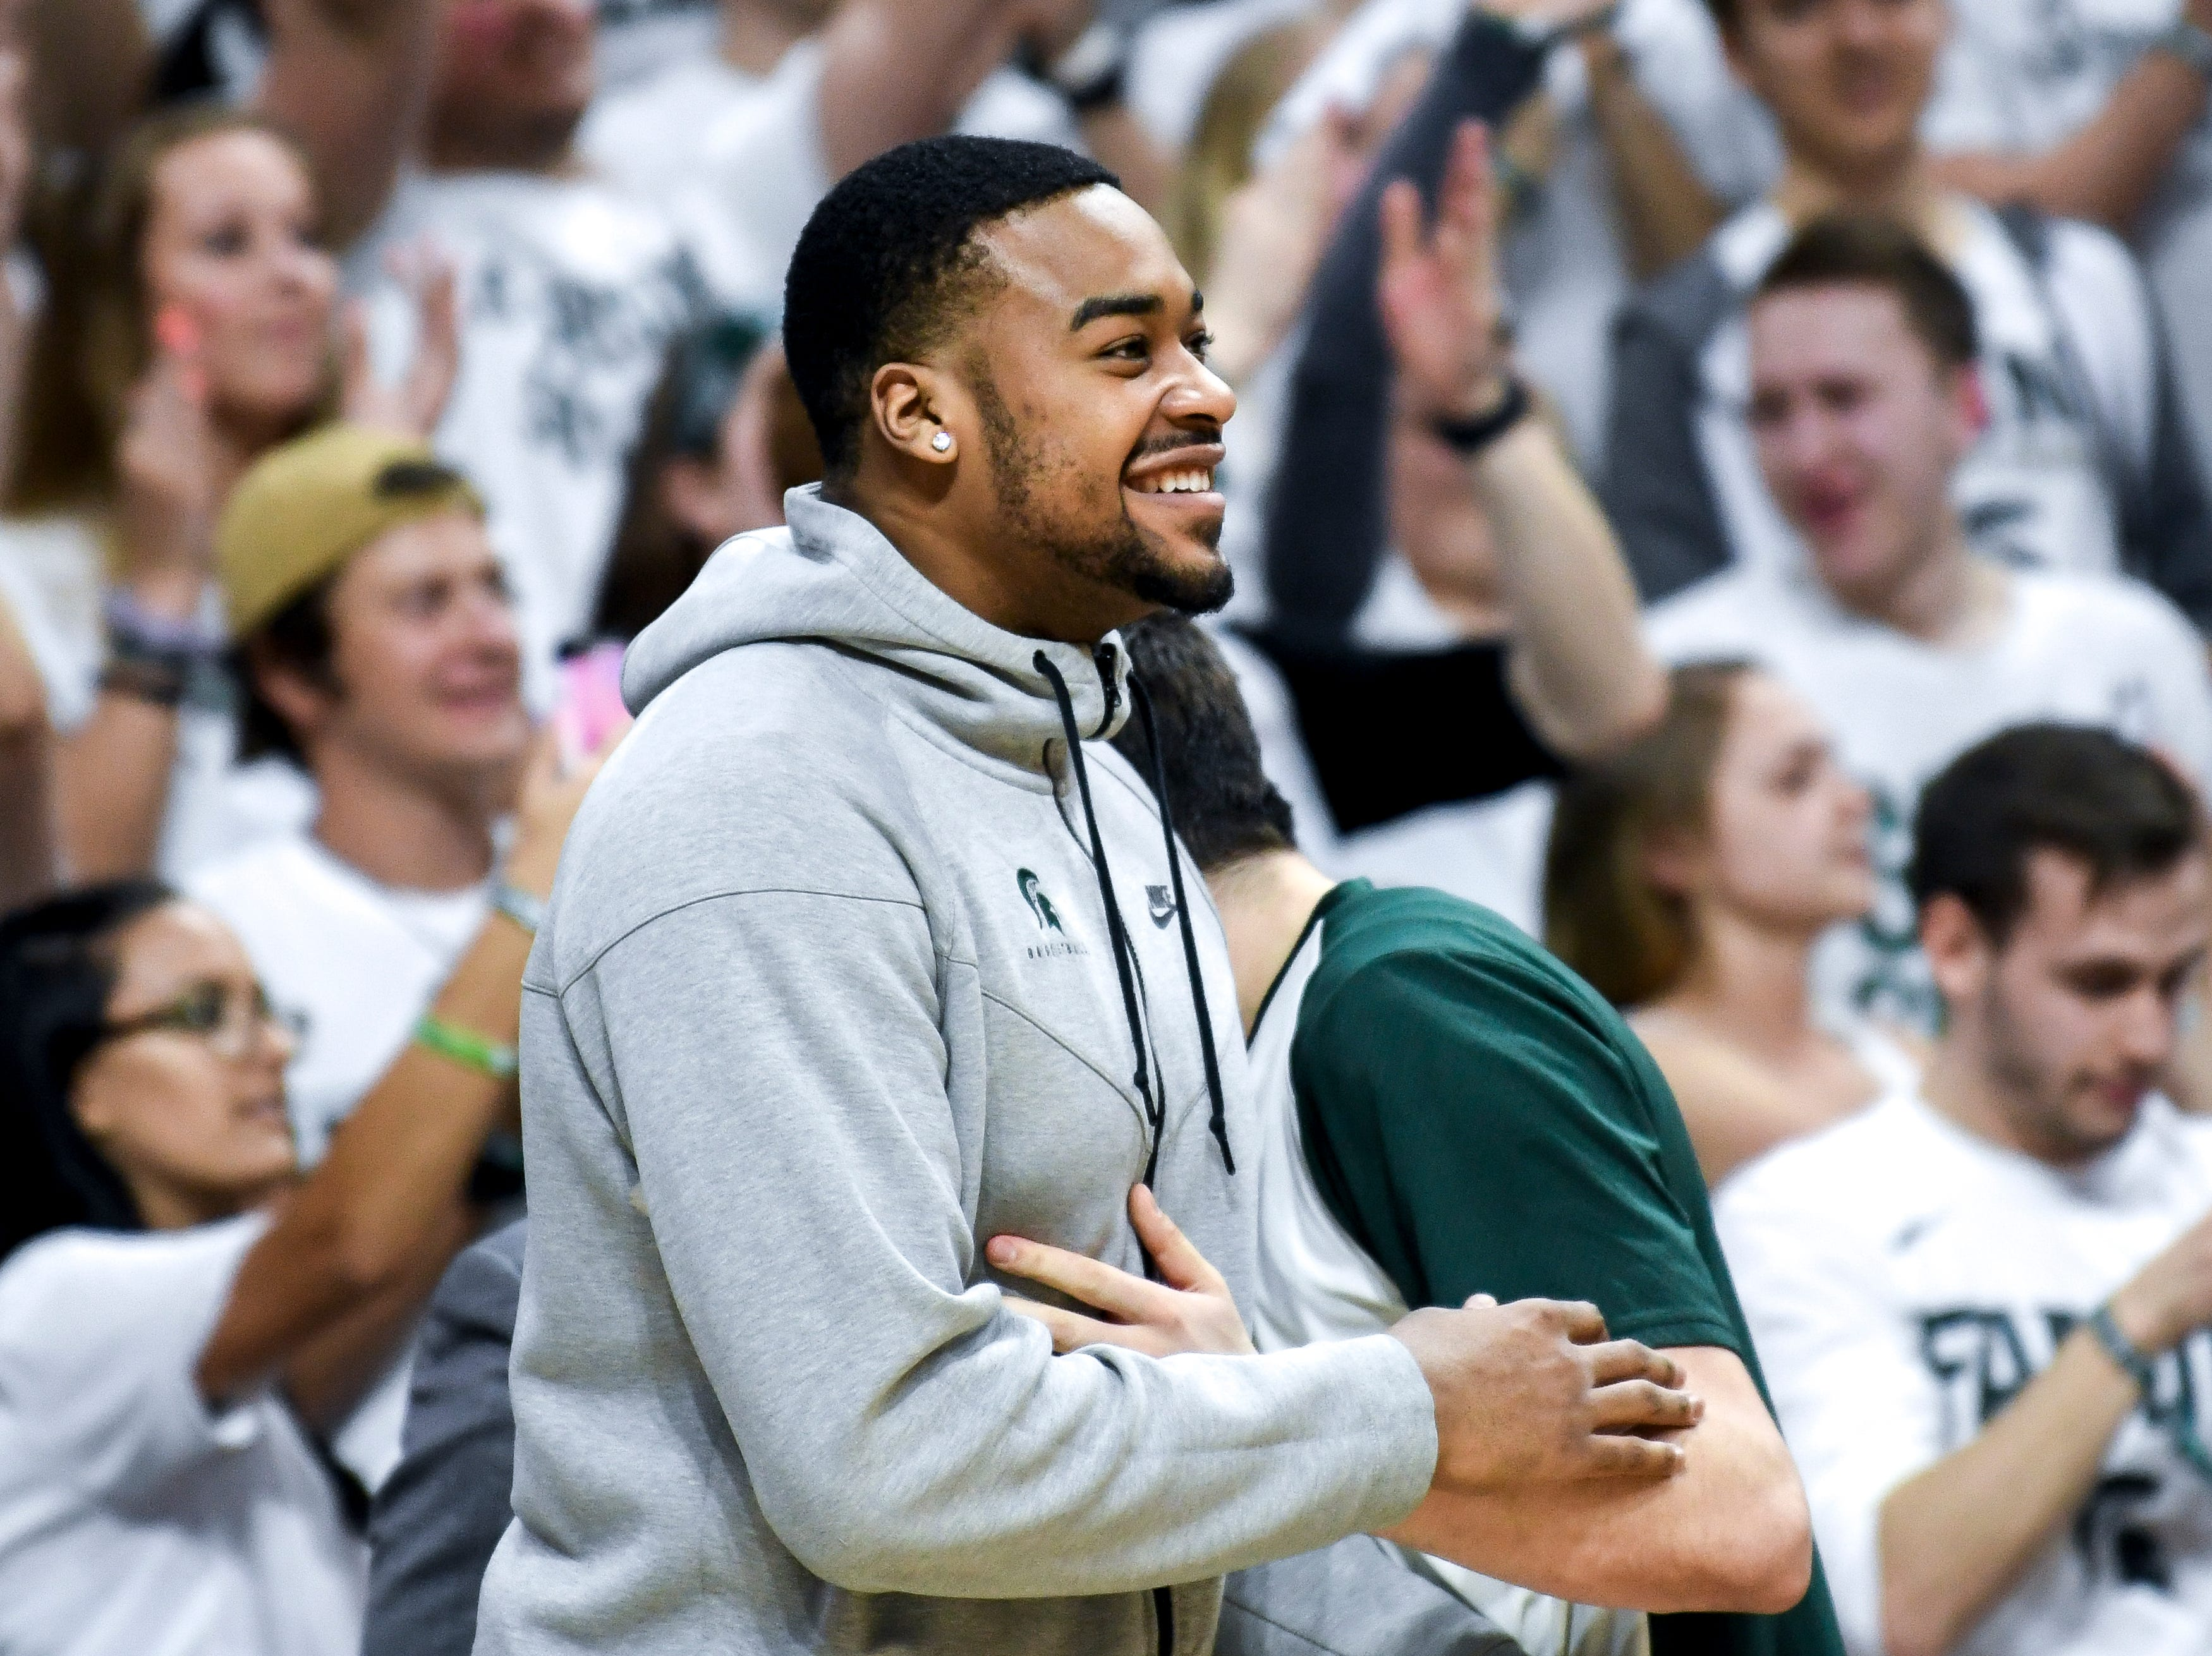 Michigan State's Nick Ward celebrates on the bench during the second half on Saturday, March 9, 2019, at the Breslin Center in East Lansing.